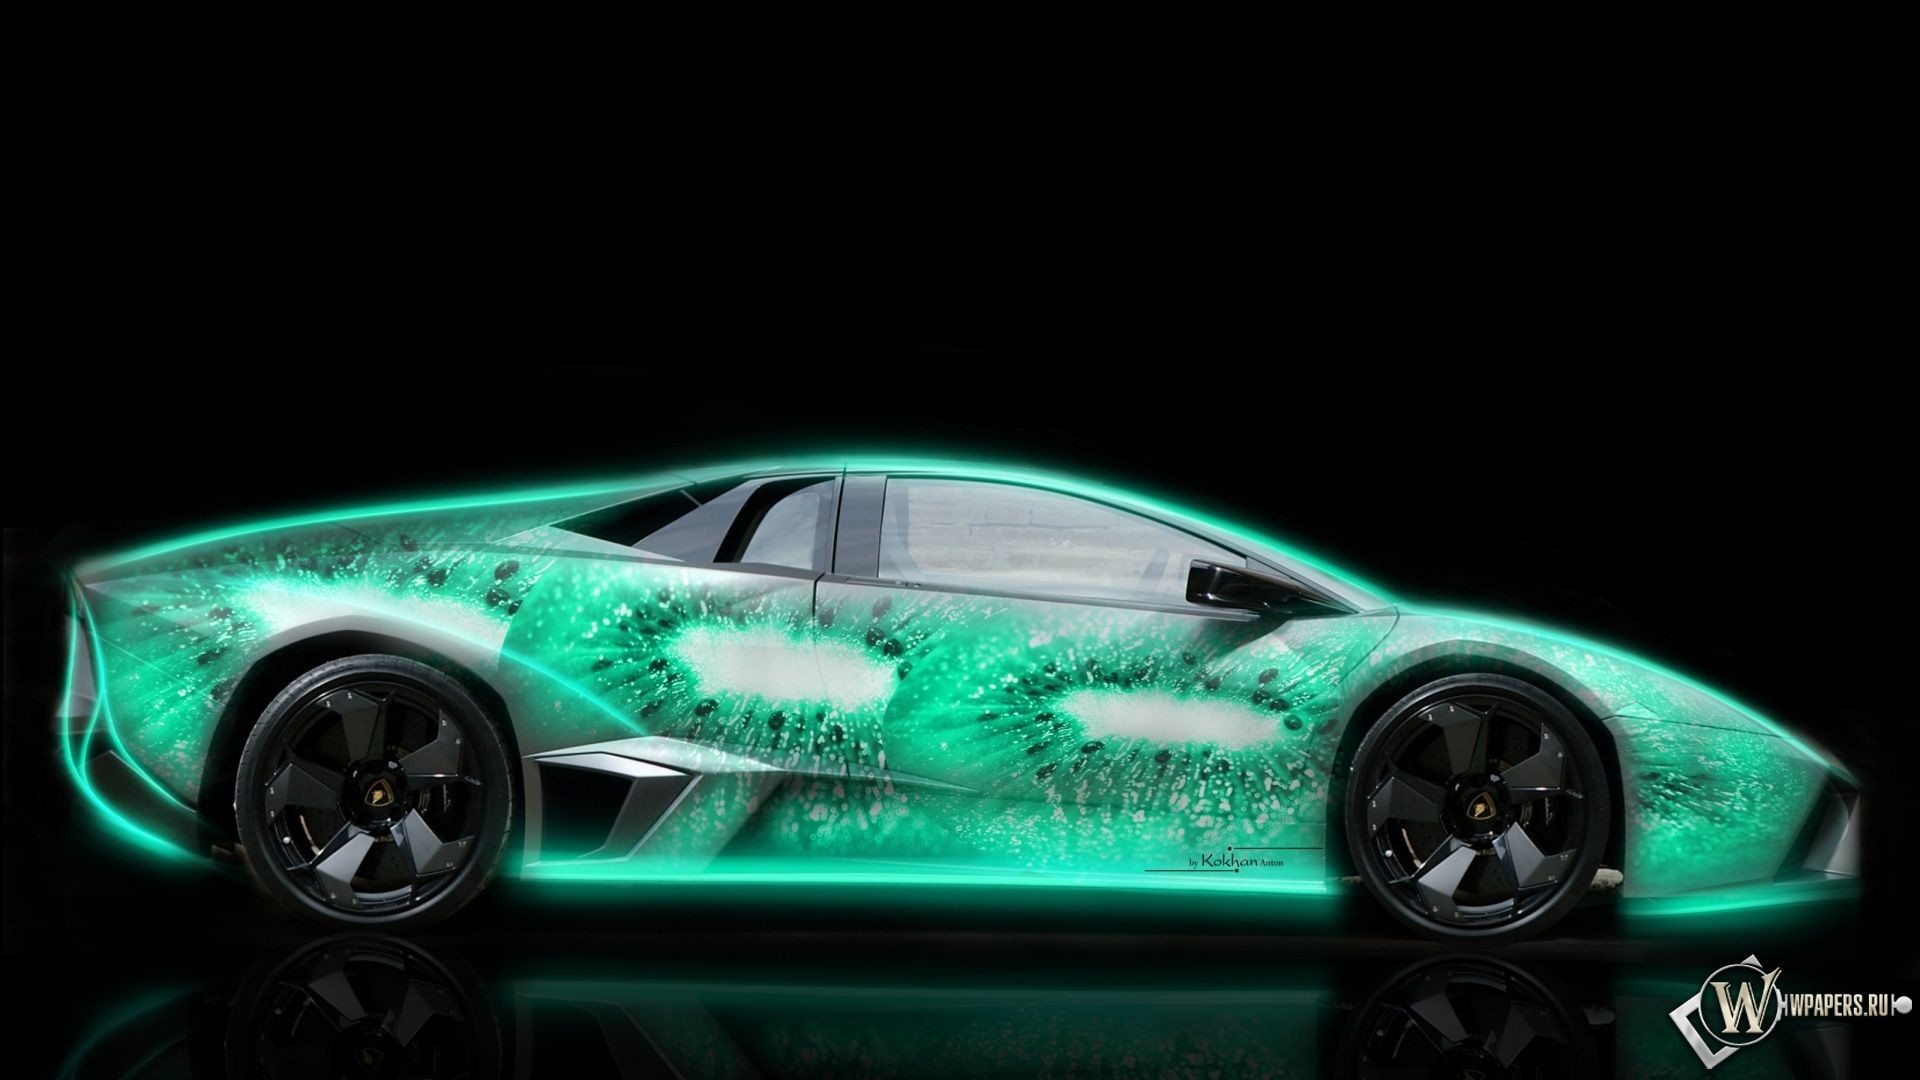 Res: 1920x1080, hd-wallpaper-neon-cool-wallpapers-lamborghini-colors-hd-1080p-for-android-mobile-iphone-mac--windows-7-4-1366x768.jpg  (1920×1080)